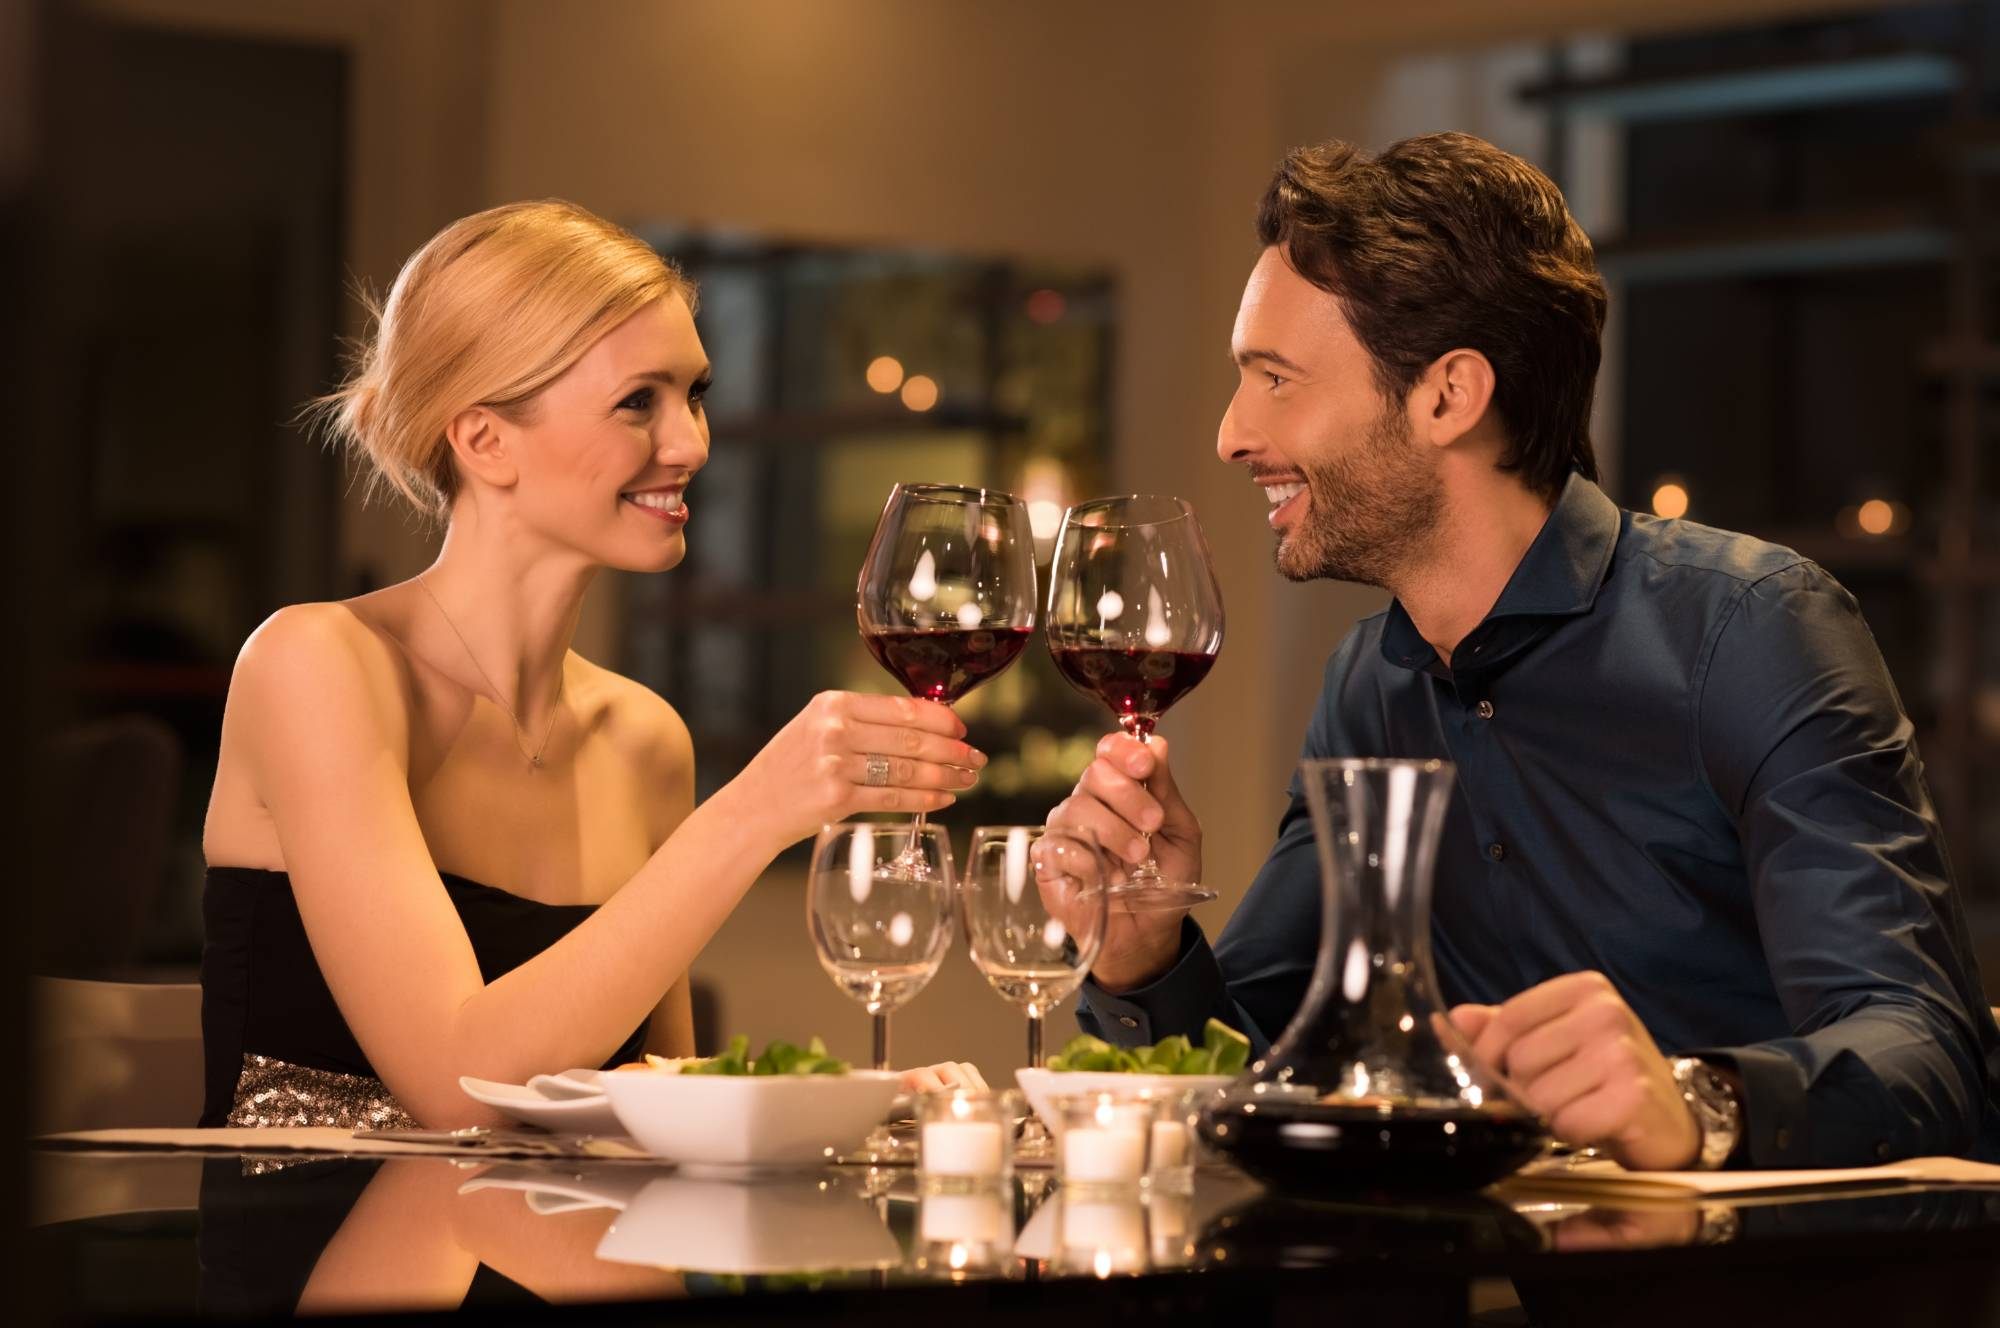 Date Night At Level Four Restaurant